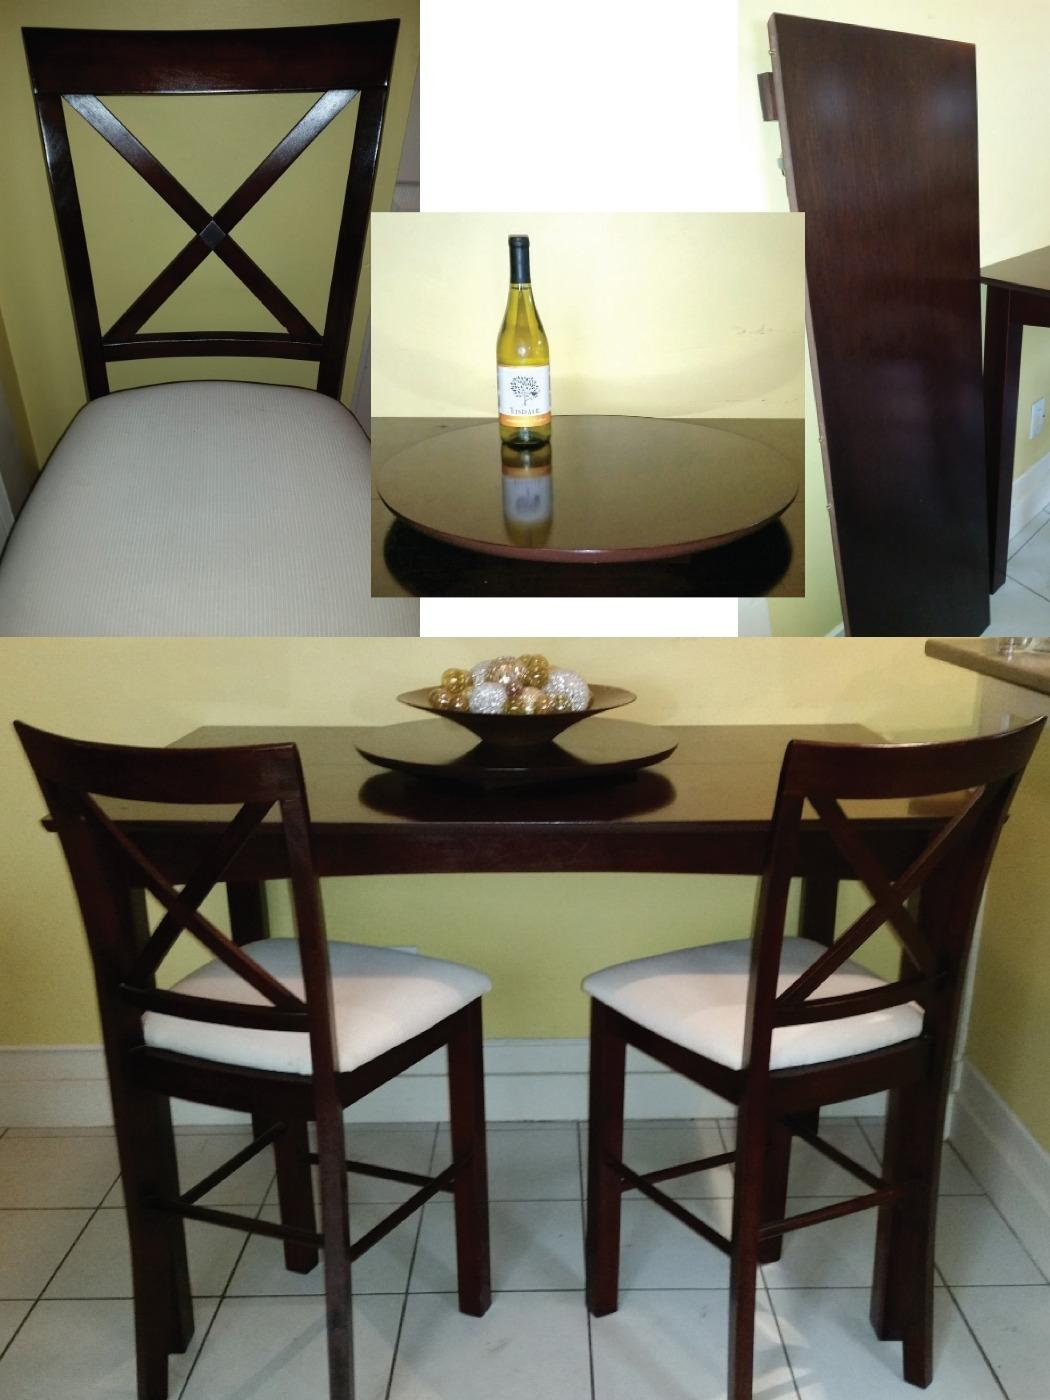 Spill Diningroom Table Chairs